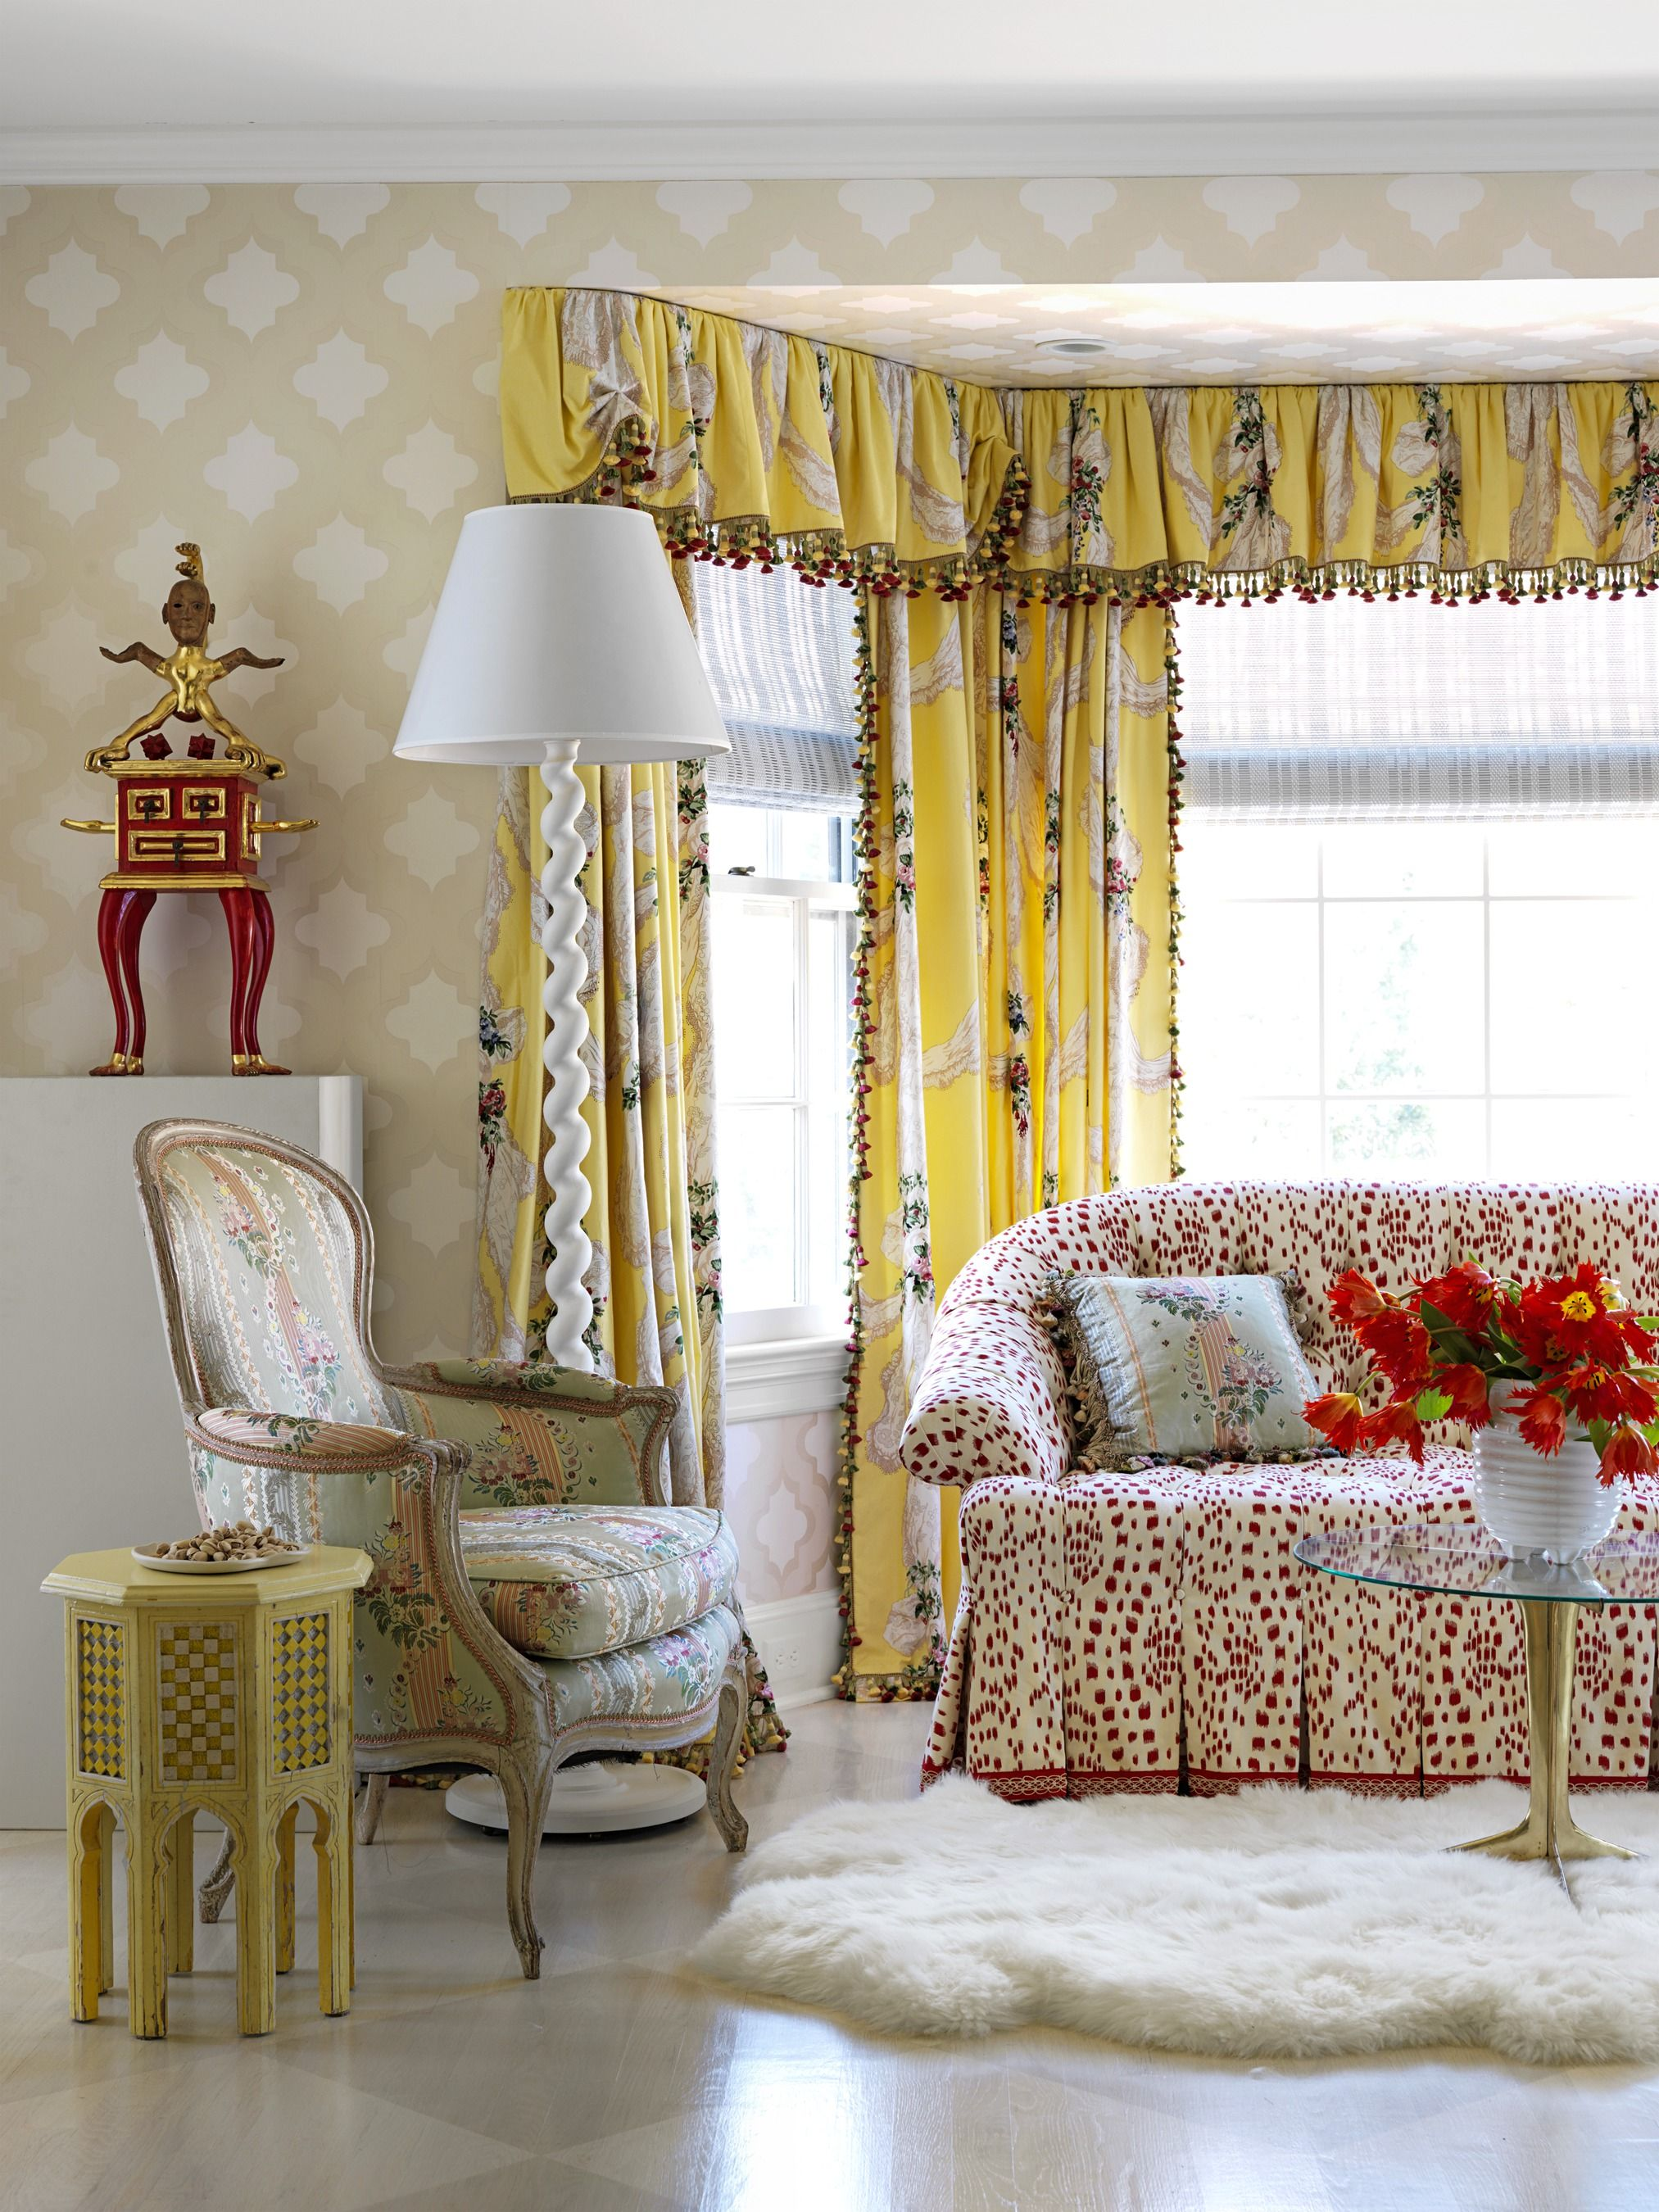 Shop Home Decor From Our July/August Issue   Home Decor Ideas